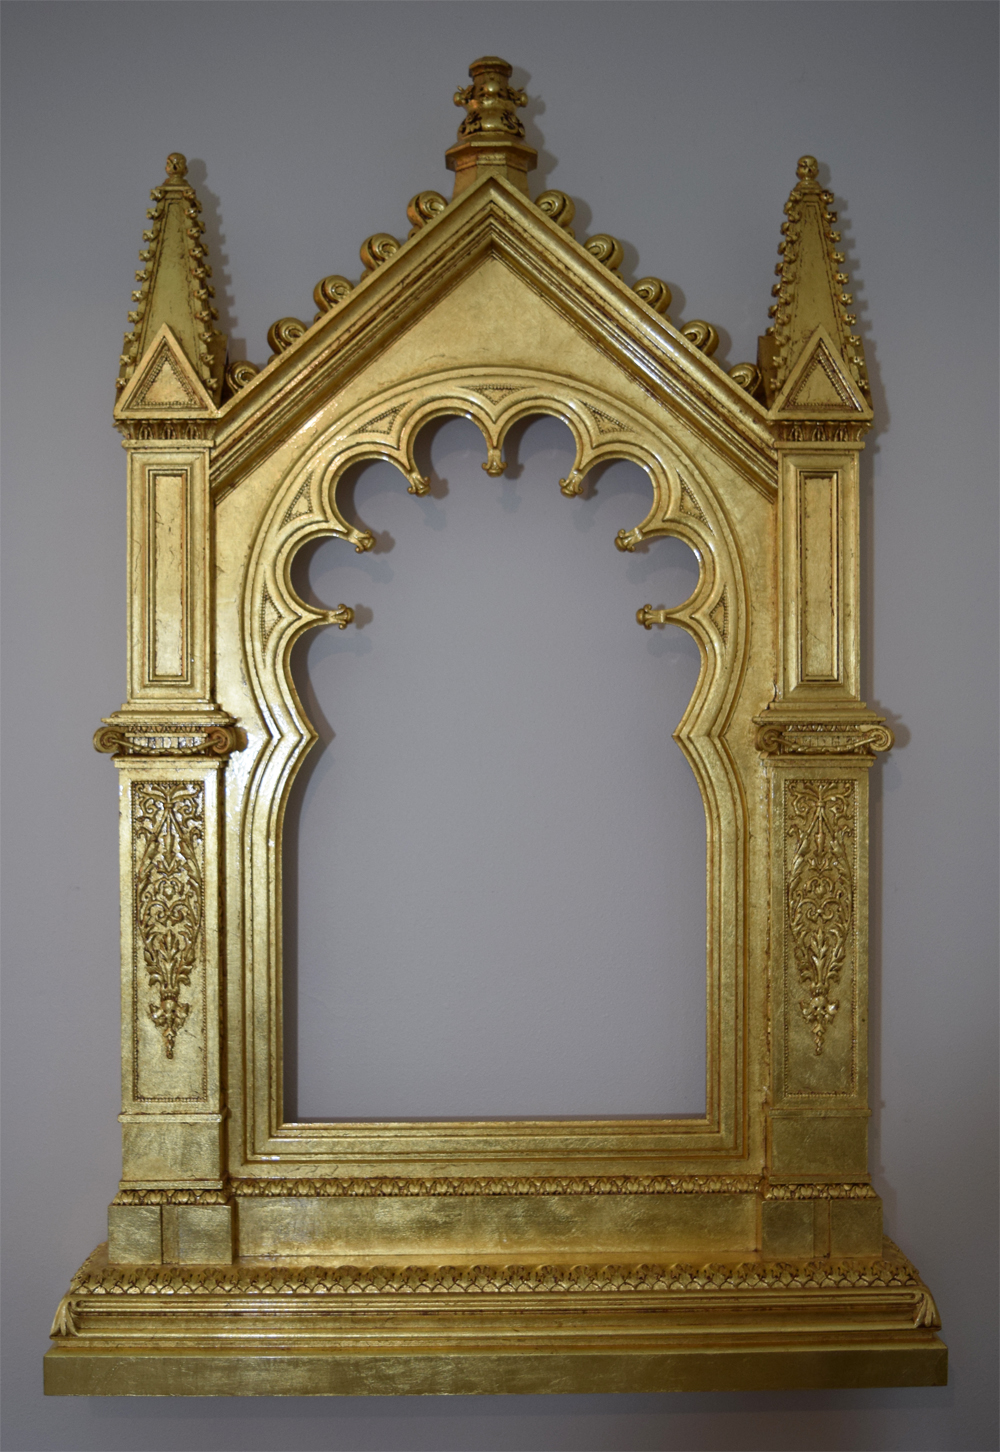 The finished gilded frame. The gold leaf has been toned down with a thin layer of oil paint, and clear coat applied.